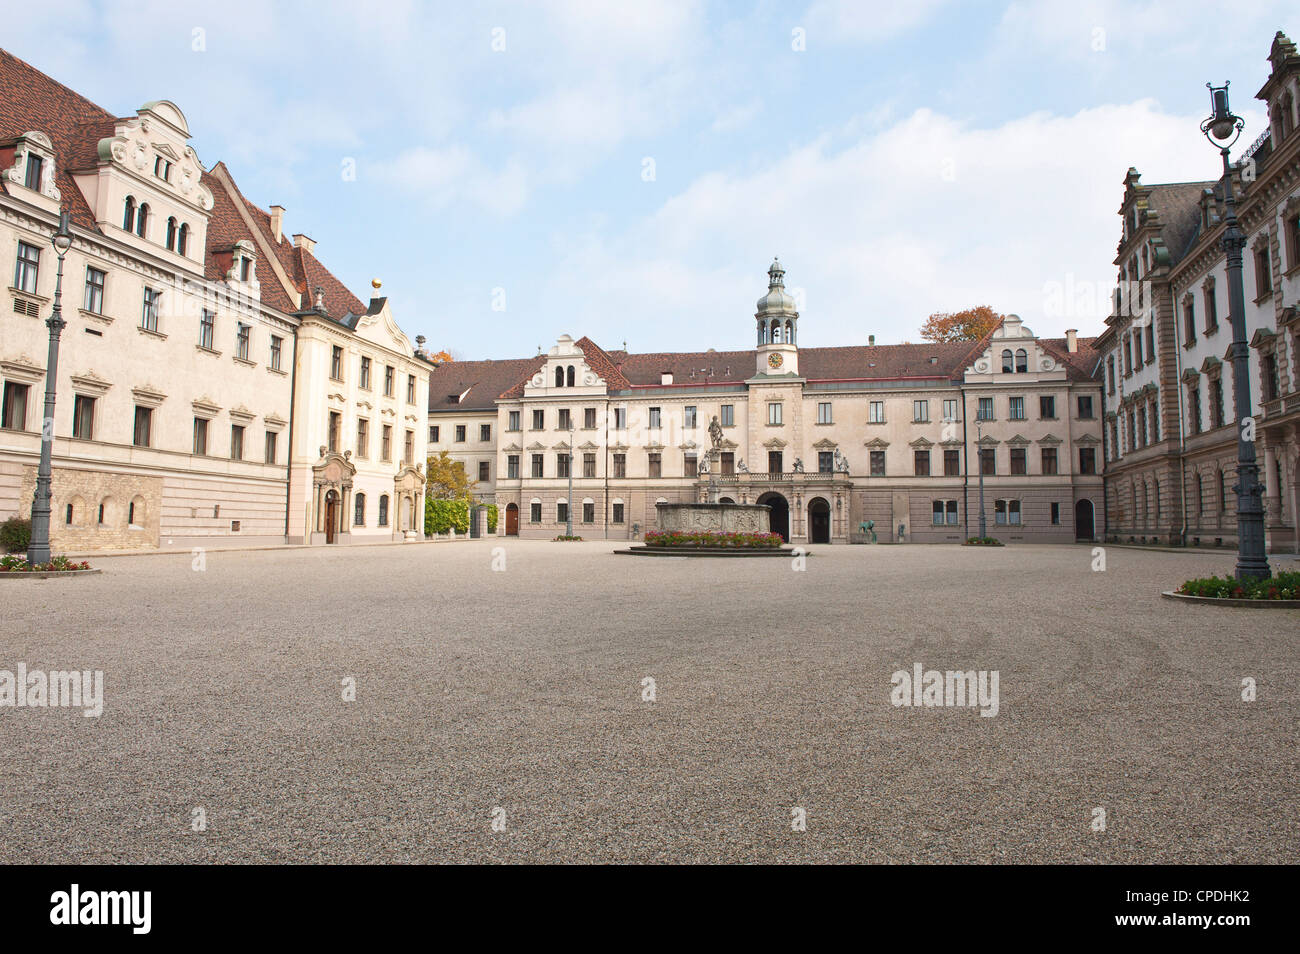 thurn und taxis palace regensburg unesco world heritage site stock photo royalty free image. Black Bedroom Furniture Sets. Home Design Ideas